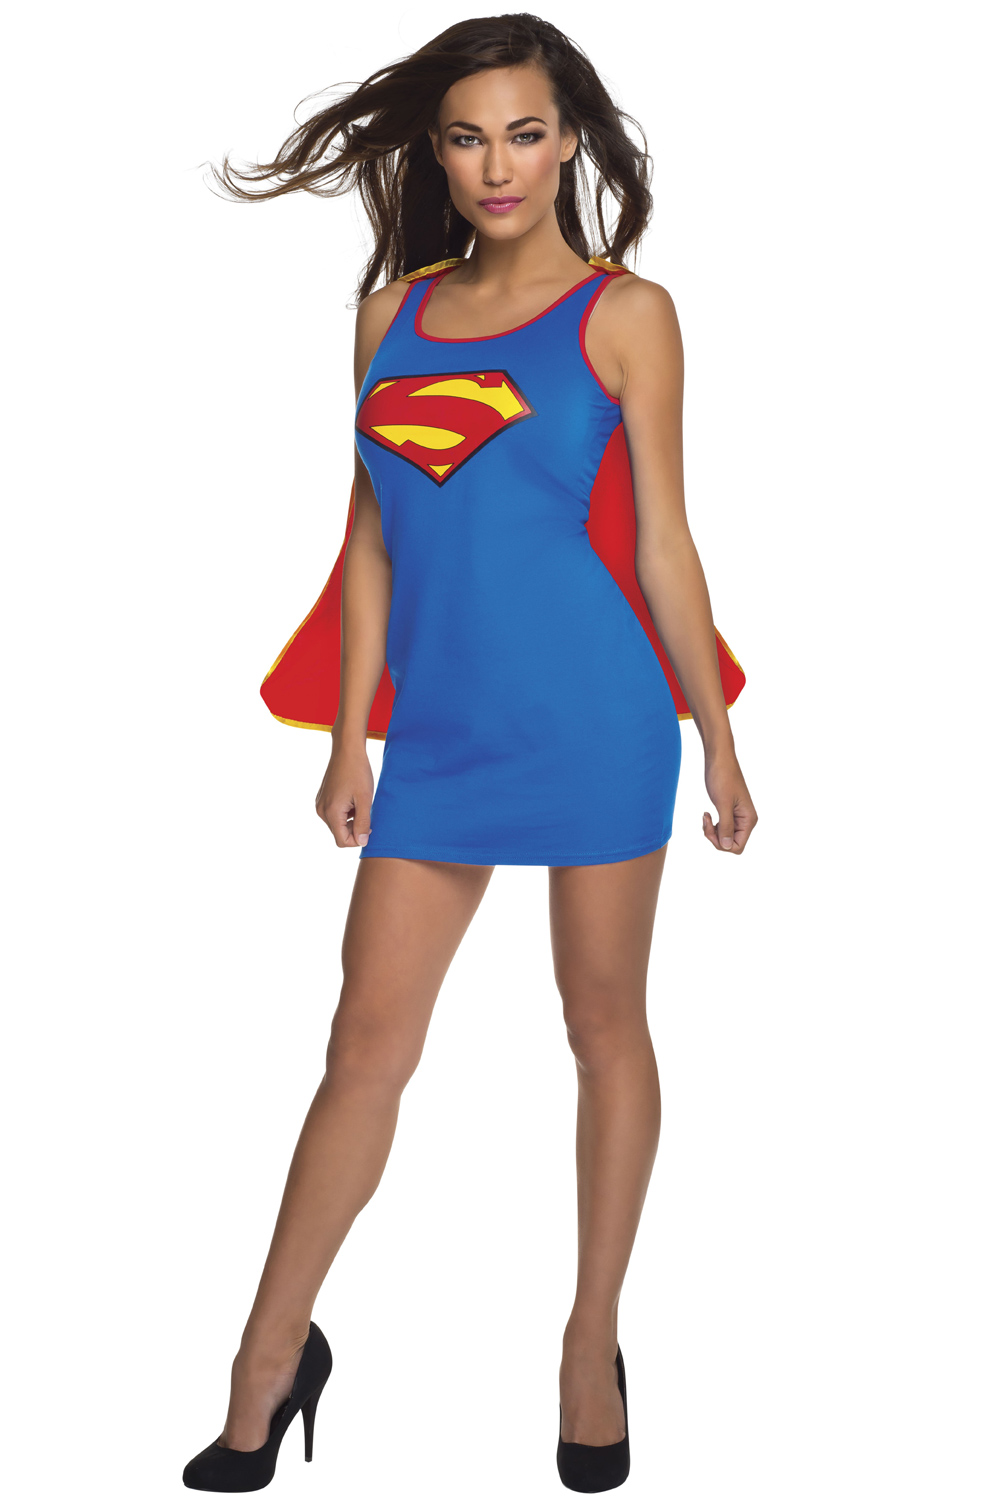 sc 1 st  Pure Costumes & Supergirl Tank Dress Adult Costume - PureCostumes.com